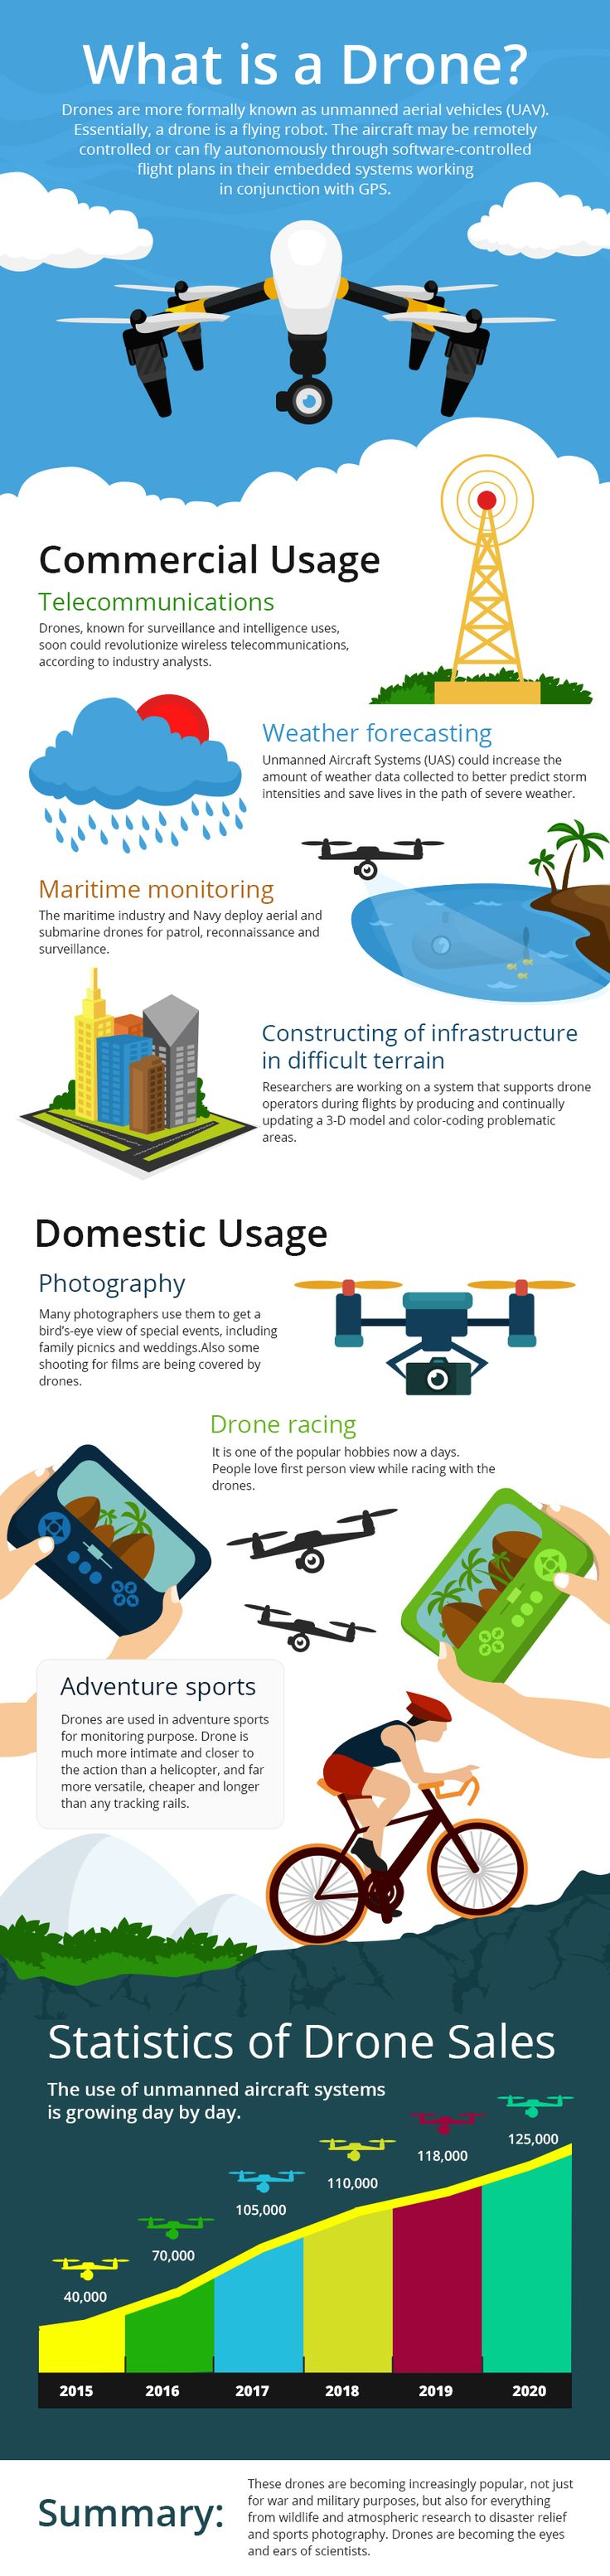 Drones are high in demand because of its various usage in domestic and commercia...